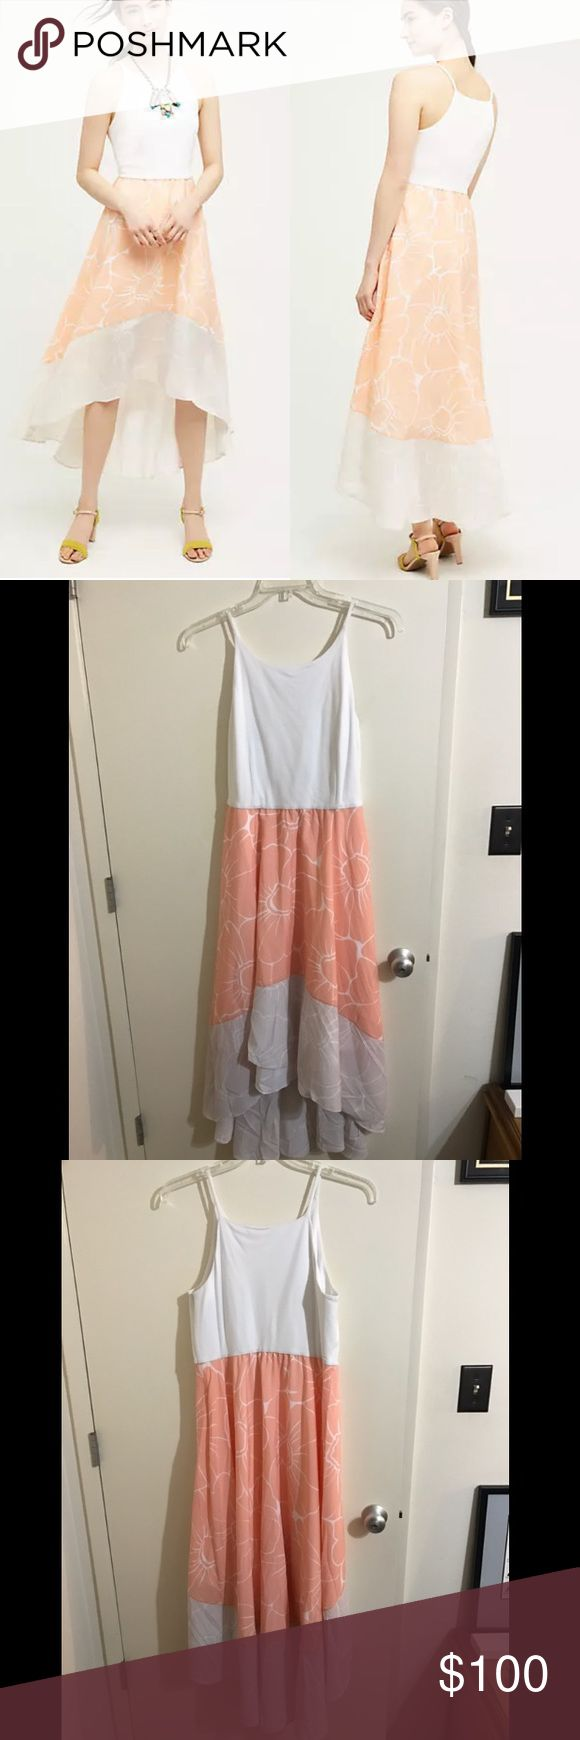 """Anthropologie Hutch Peachy Dress NWT, never worn. purchased online. Imo, White material at neckline could use a wash before wearing, but it was delivered to me from store like that. No stains and easy fix. Just didn't ever wear it so I didn't get it done myself. Beautiful for Spring. Bust 19"""", waist 18"""", length 53.5"""". Hi-Low hemline style. White material stretches on top and waist. Anthropologie Dresses"""